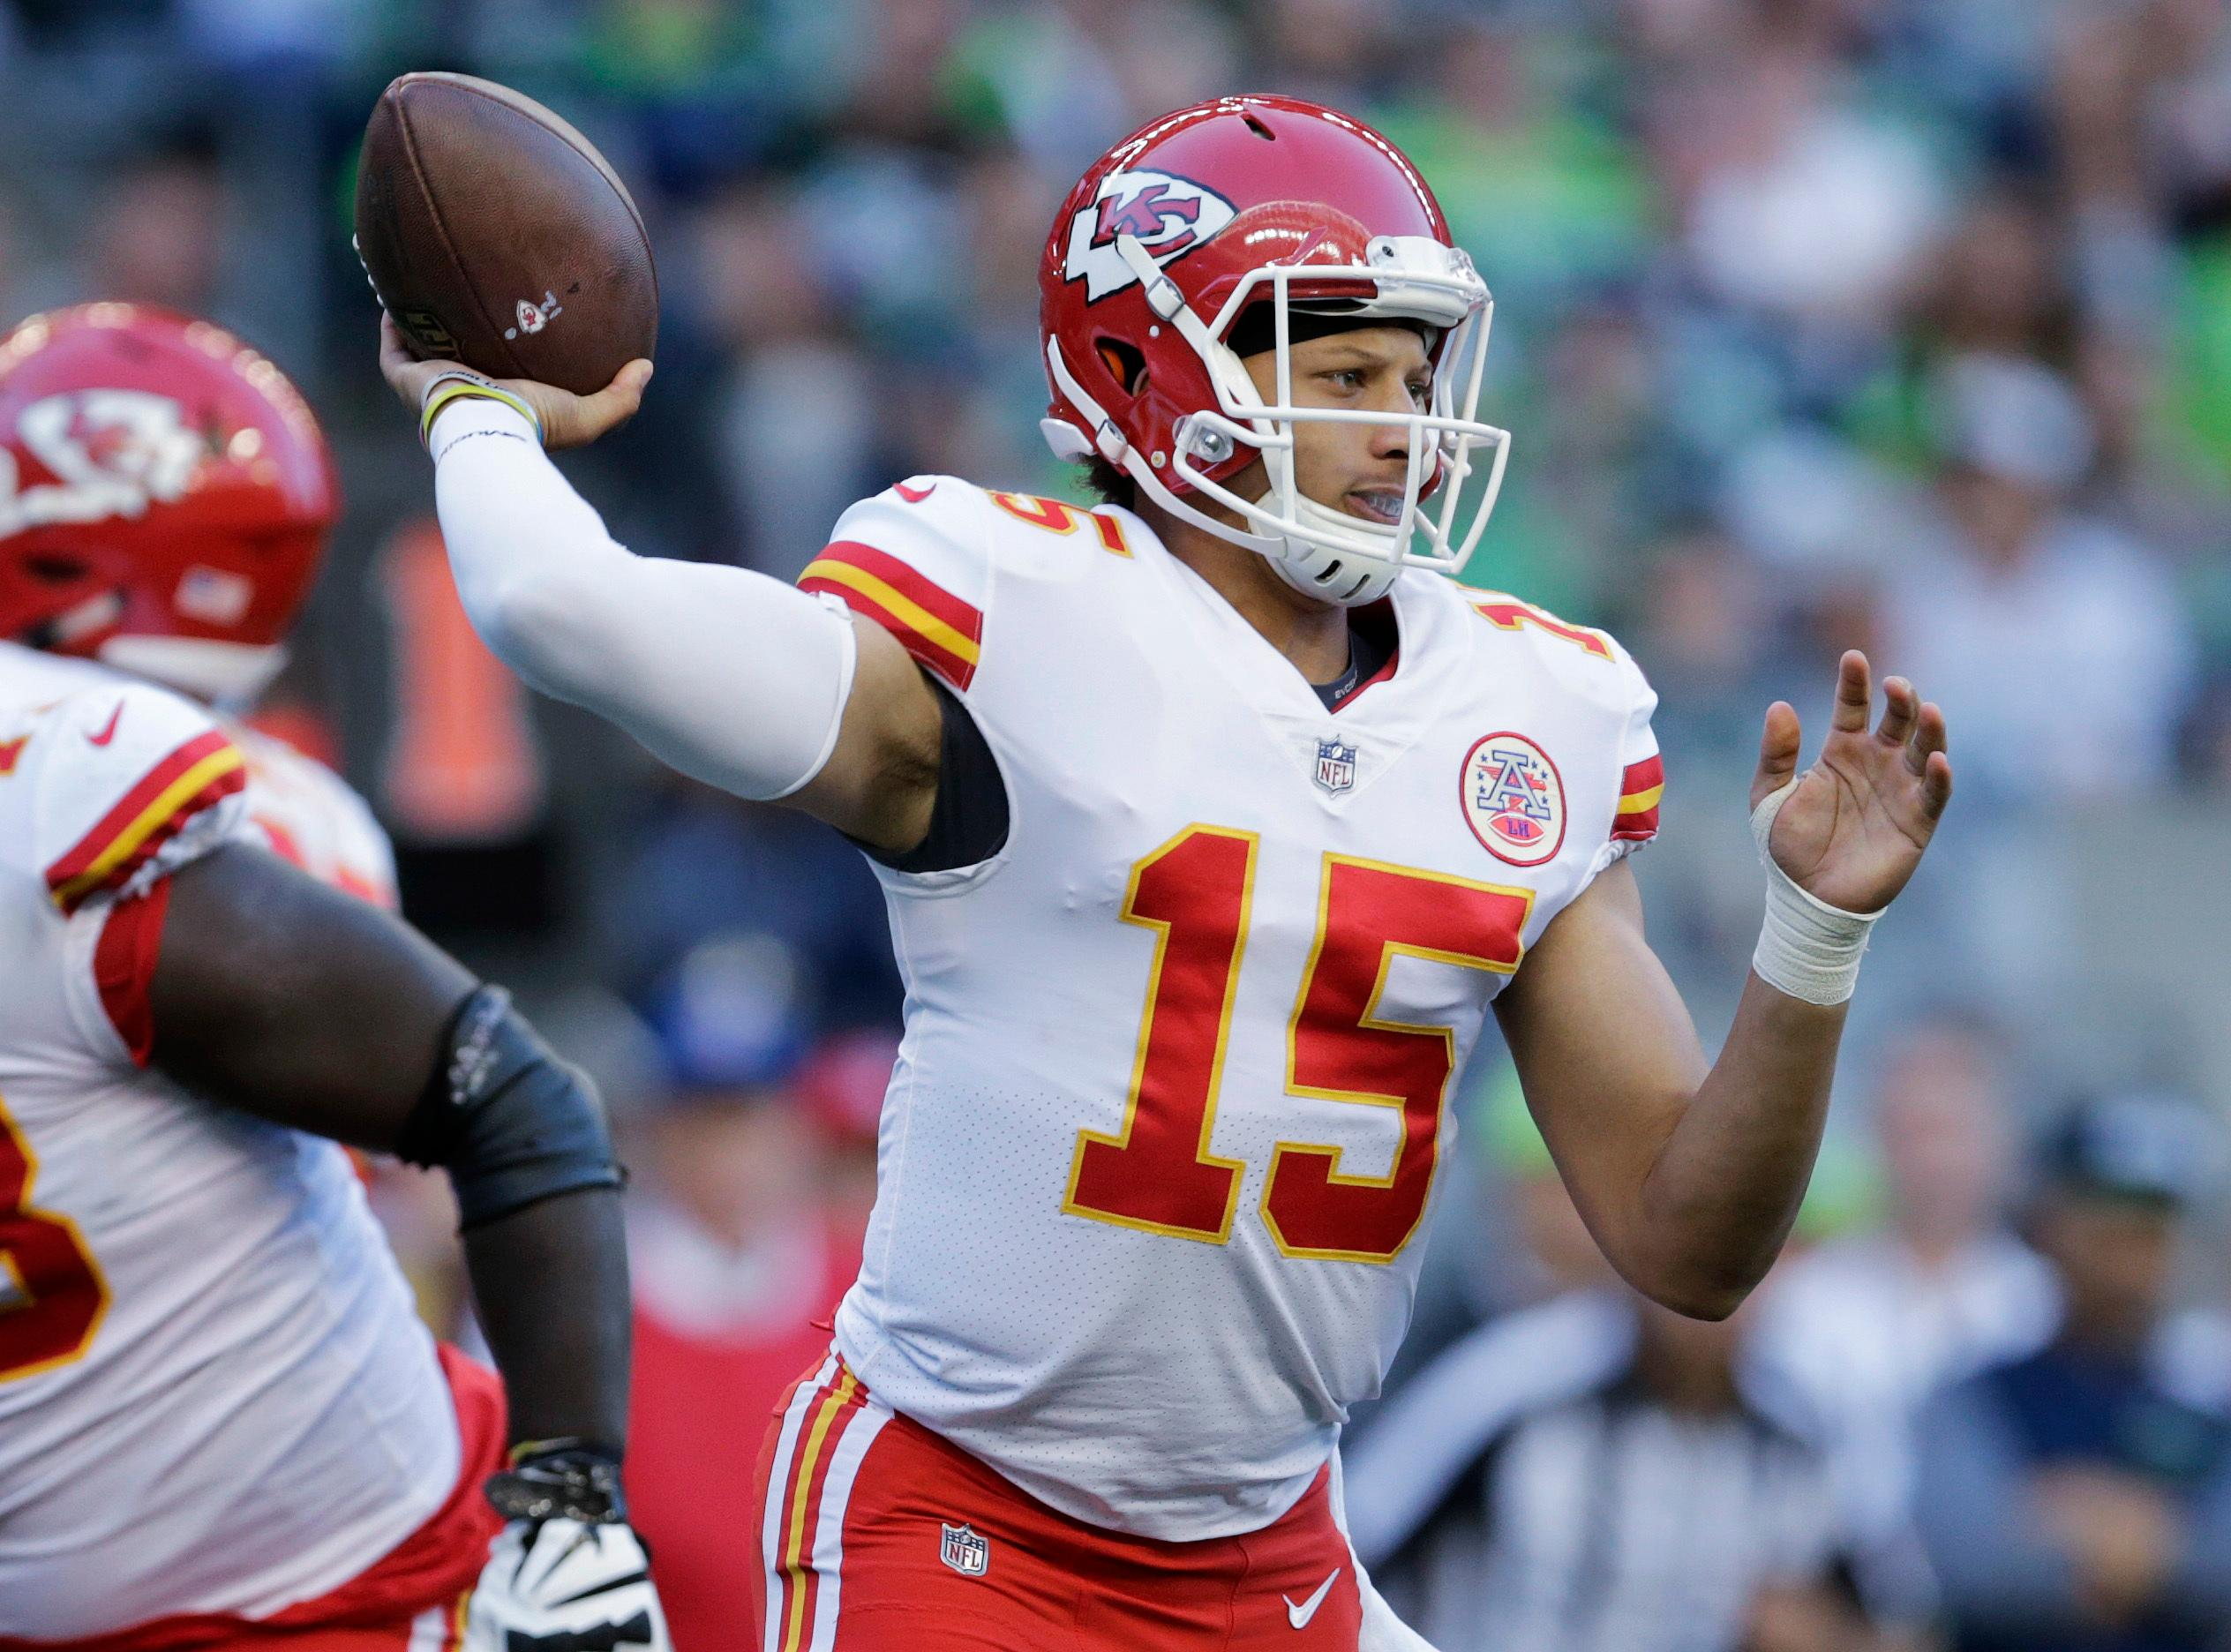 Kansas City Chiefs quarterback Patrick Mahomes (15) passes against the Seattle Seahawks during the second half of an NFL football preseason game, Friday, Aug. 25, 2017, in Seattle. (AP Photo/John Froschauer)